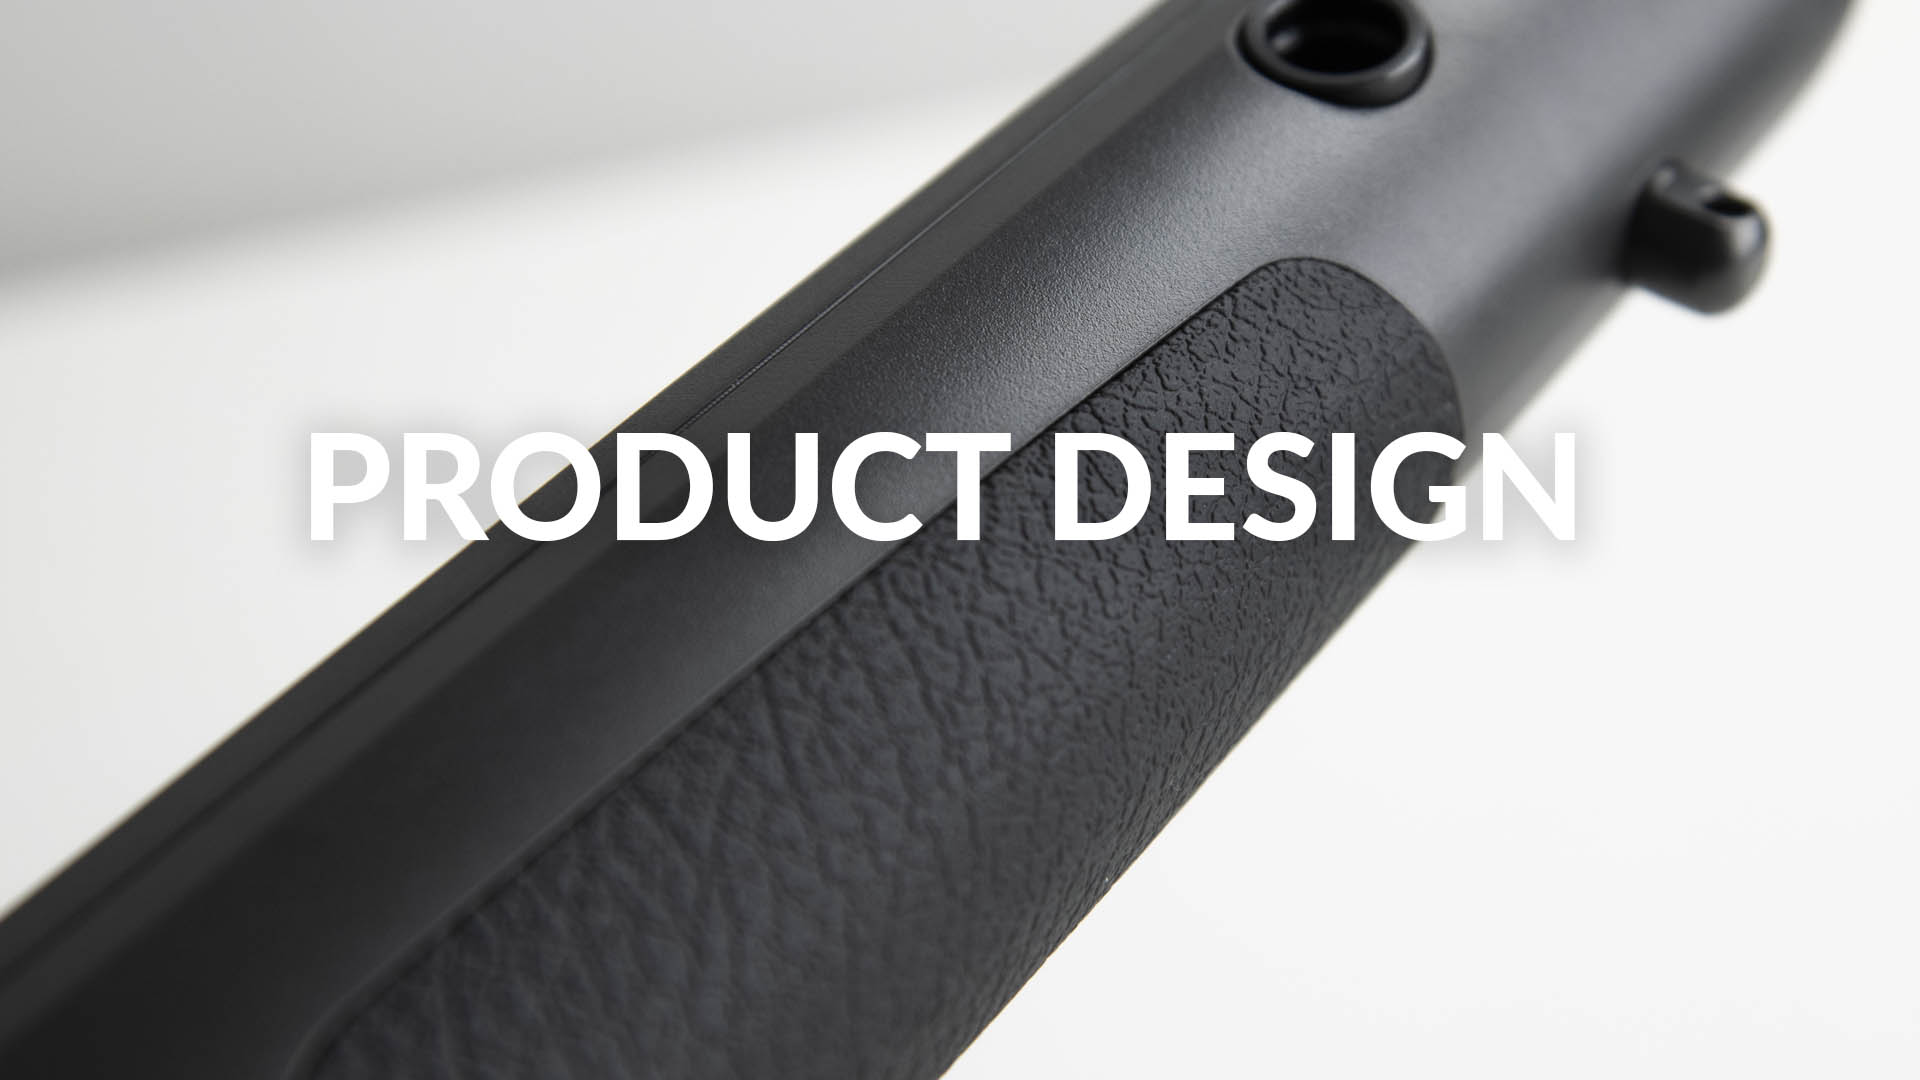 Pdat - Product design